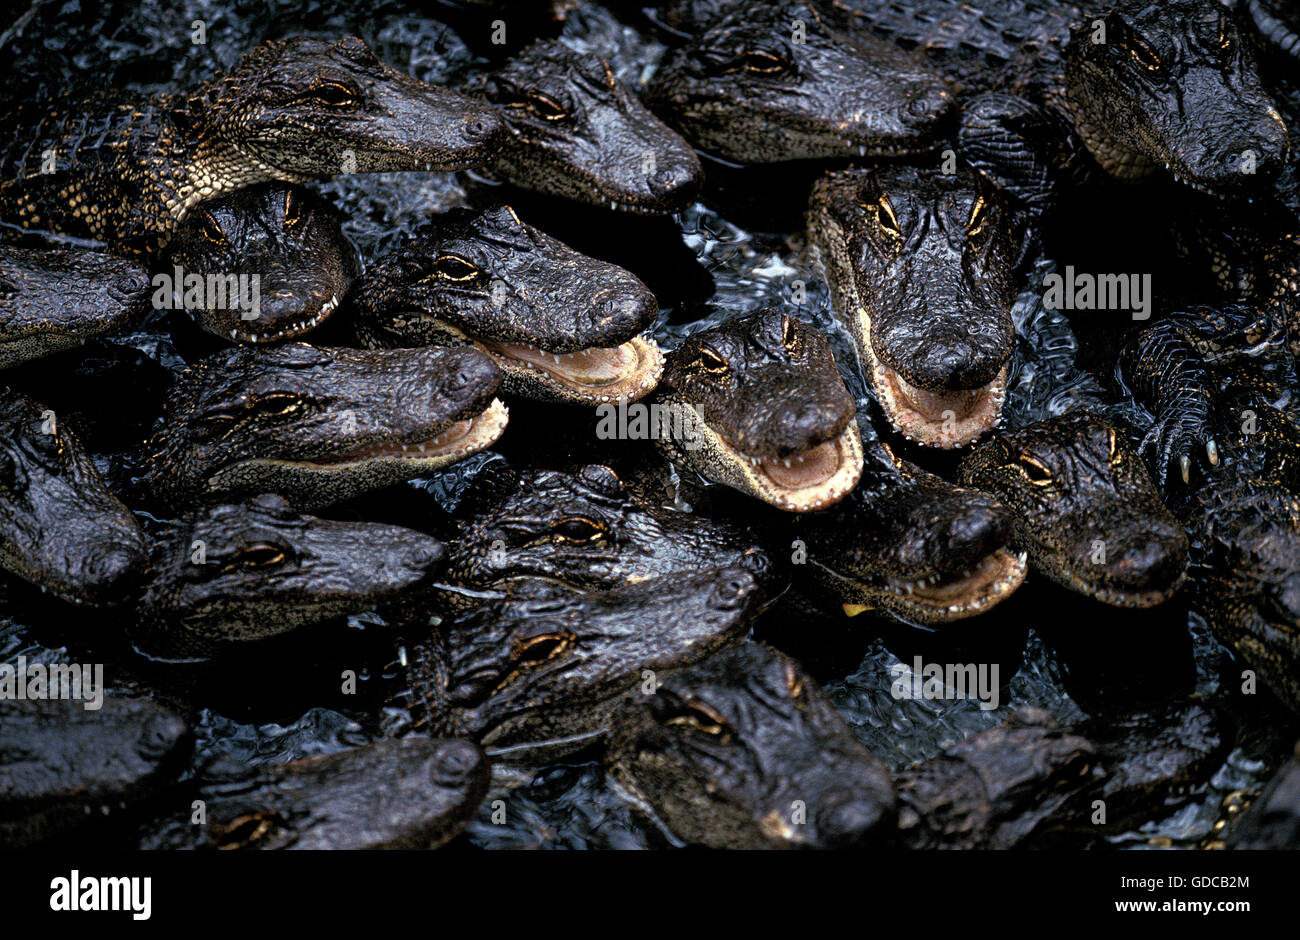 AMERICAN ALLIGATOR alligator mississipiensis, GROUP OF YOUNGS, FLORIDA - Stock Image